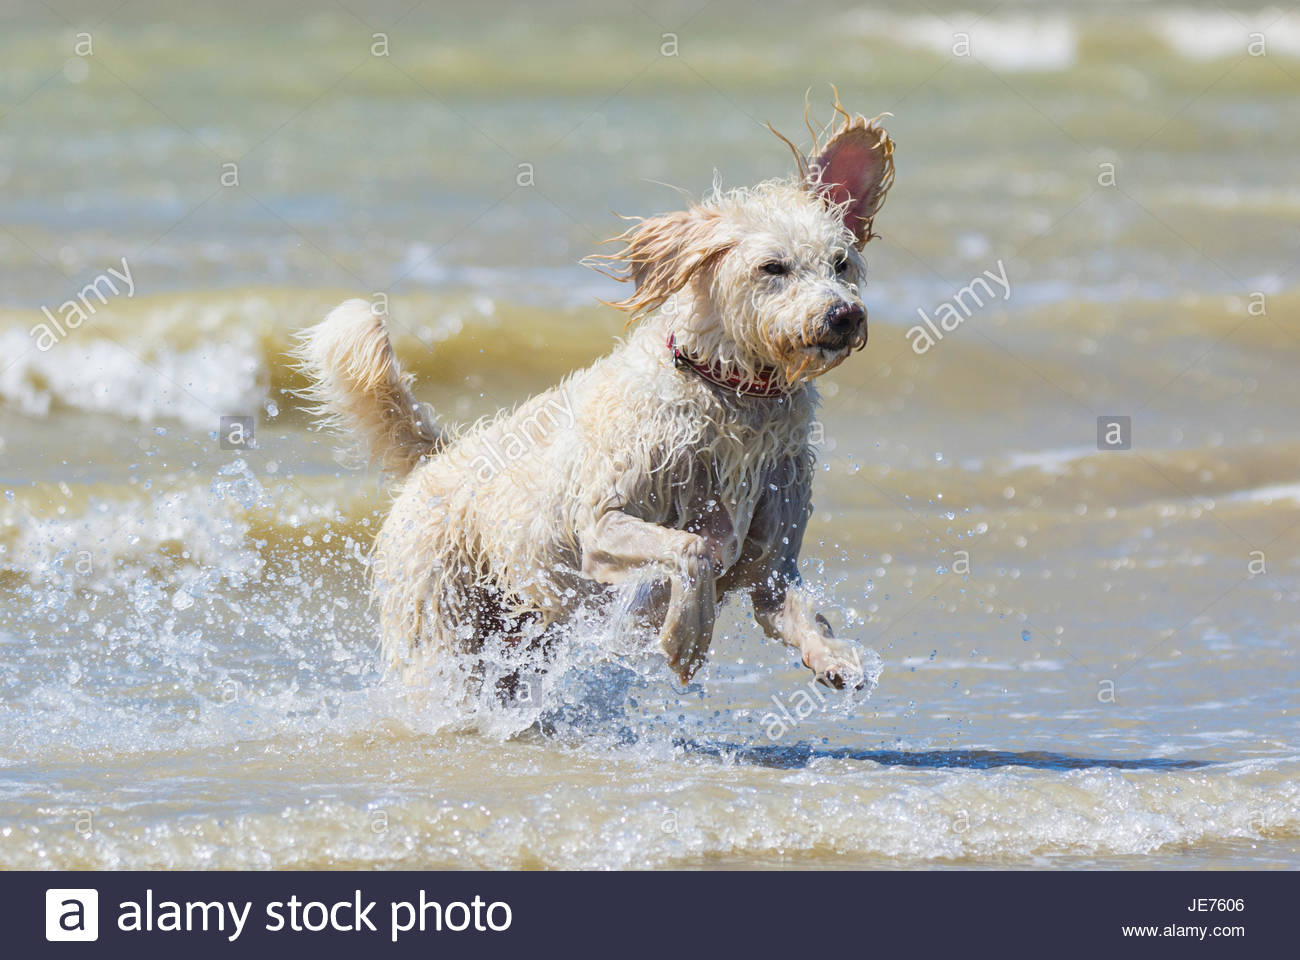 Labradoodle dog keeping cool in the sea on a hot day. - Stock Image